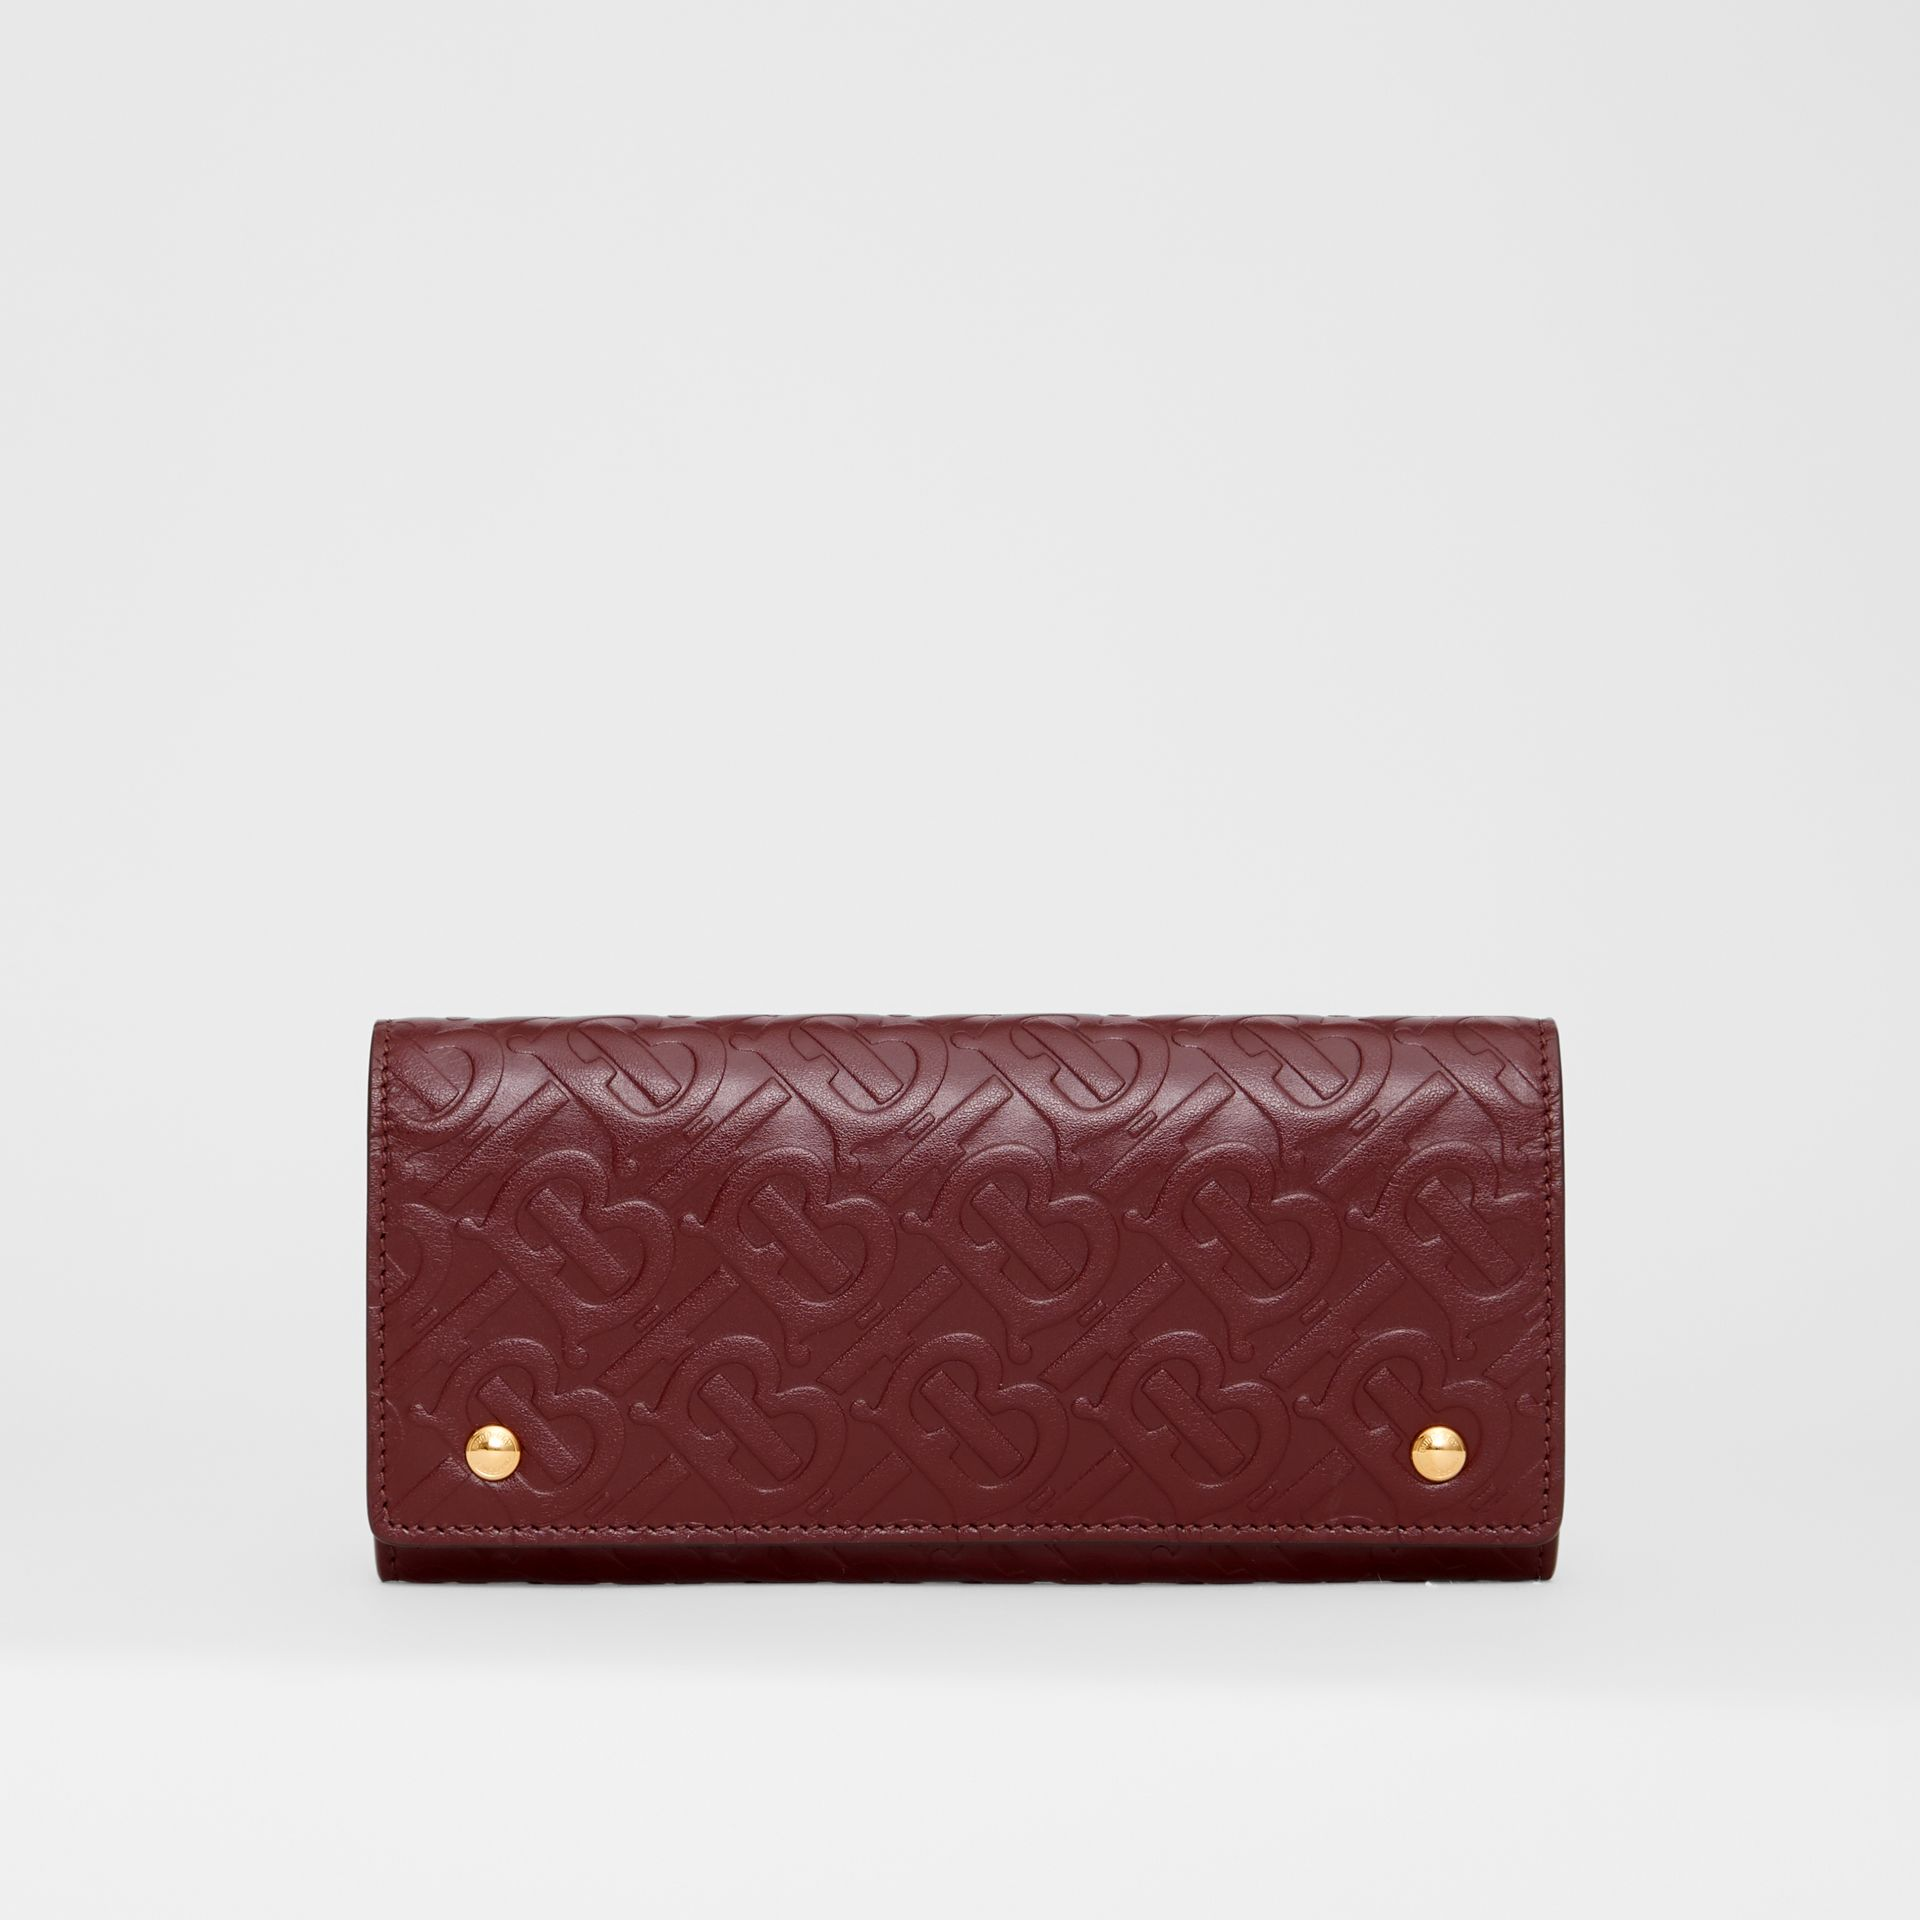 Portefeuille continental en cuir Monogram (Oxblood) - Femme | Burberry - photo de la galerie 0